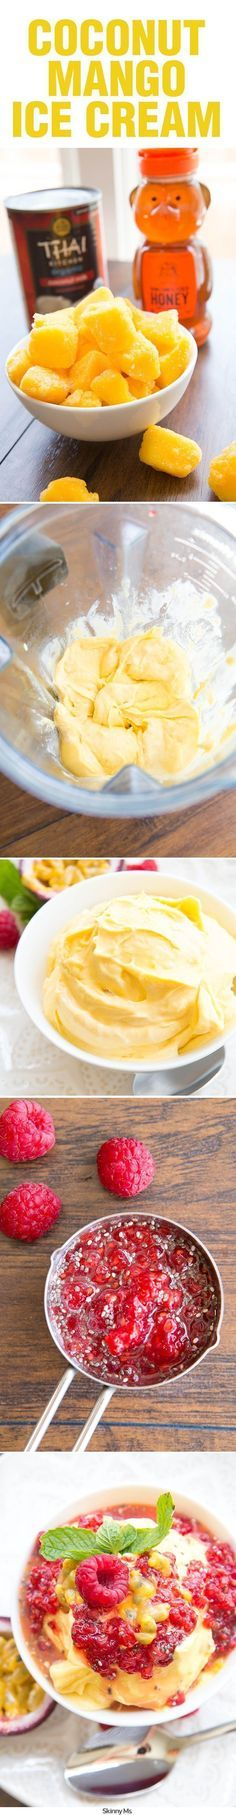 Make your own creamy, soft-serve style ice cream using just three ingredients: coconut milk, frozen fruit, and honey.